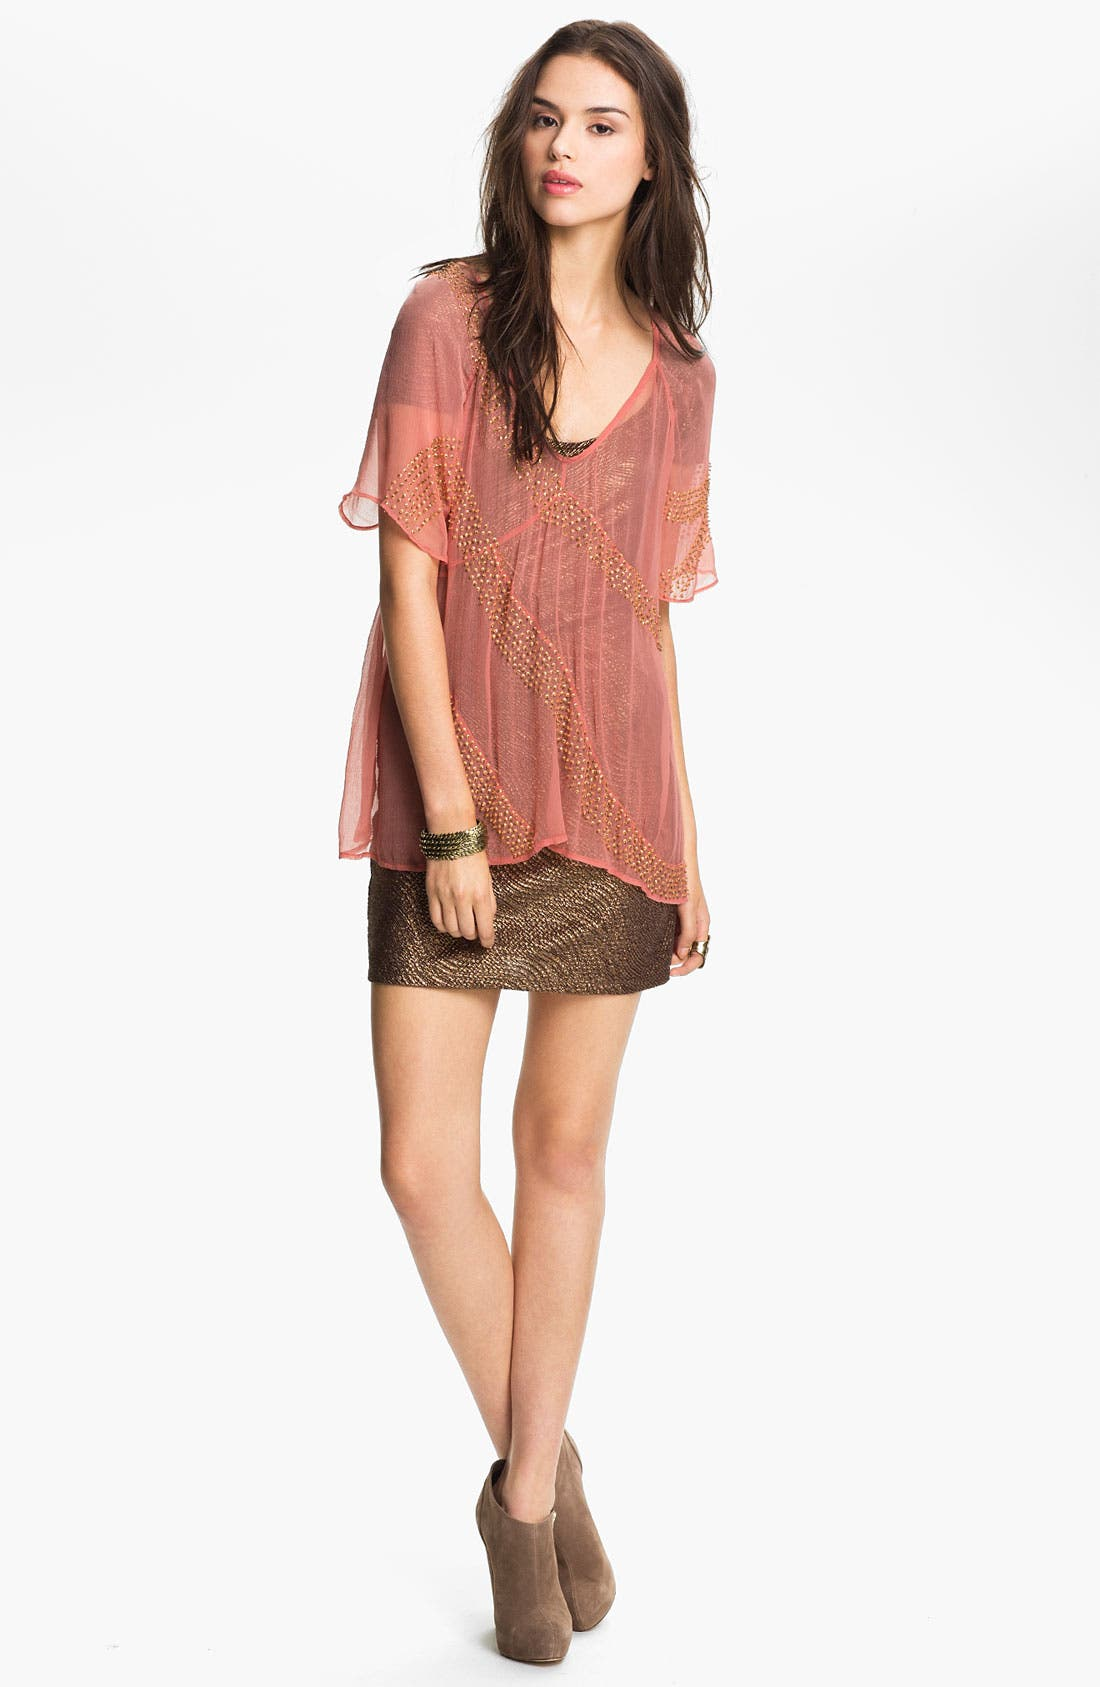 Alternate Image 1 Selected - Free People 'Moon Dance' Embellished Chiffon Top